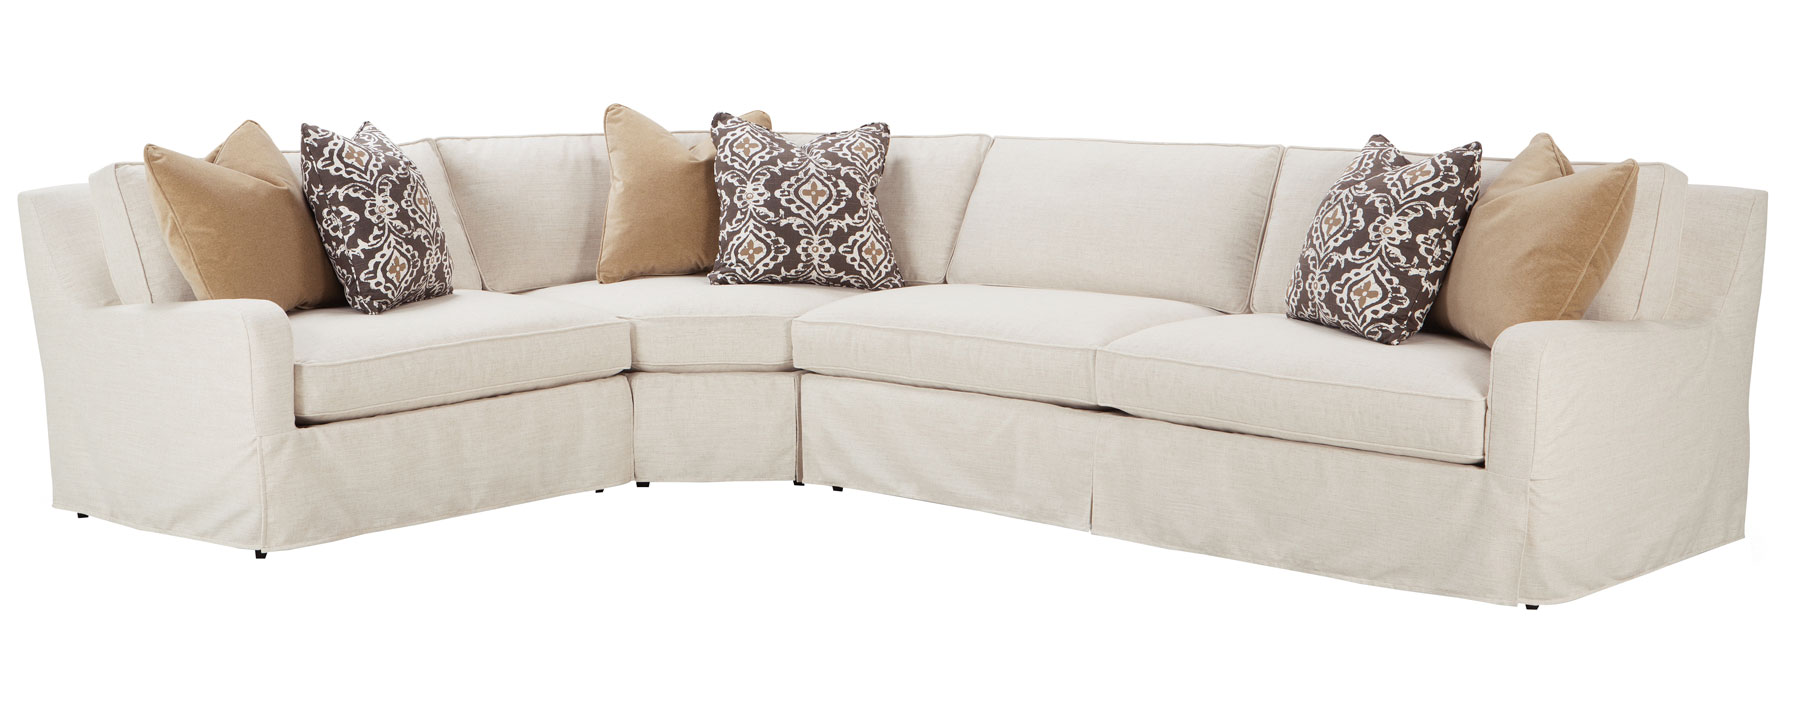 Slipcovered Fitted Back Sectional Sofa W Slope Arms